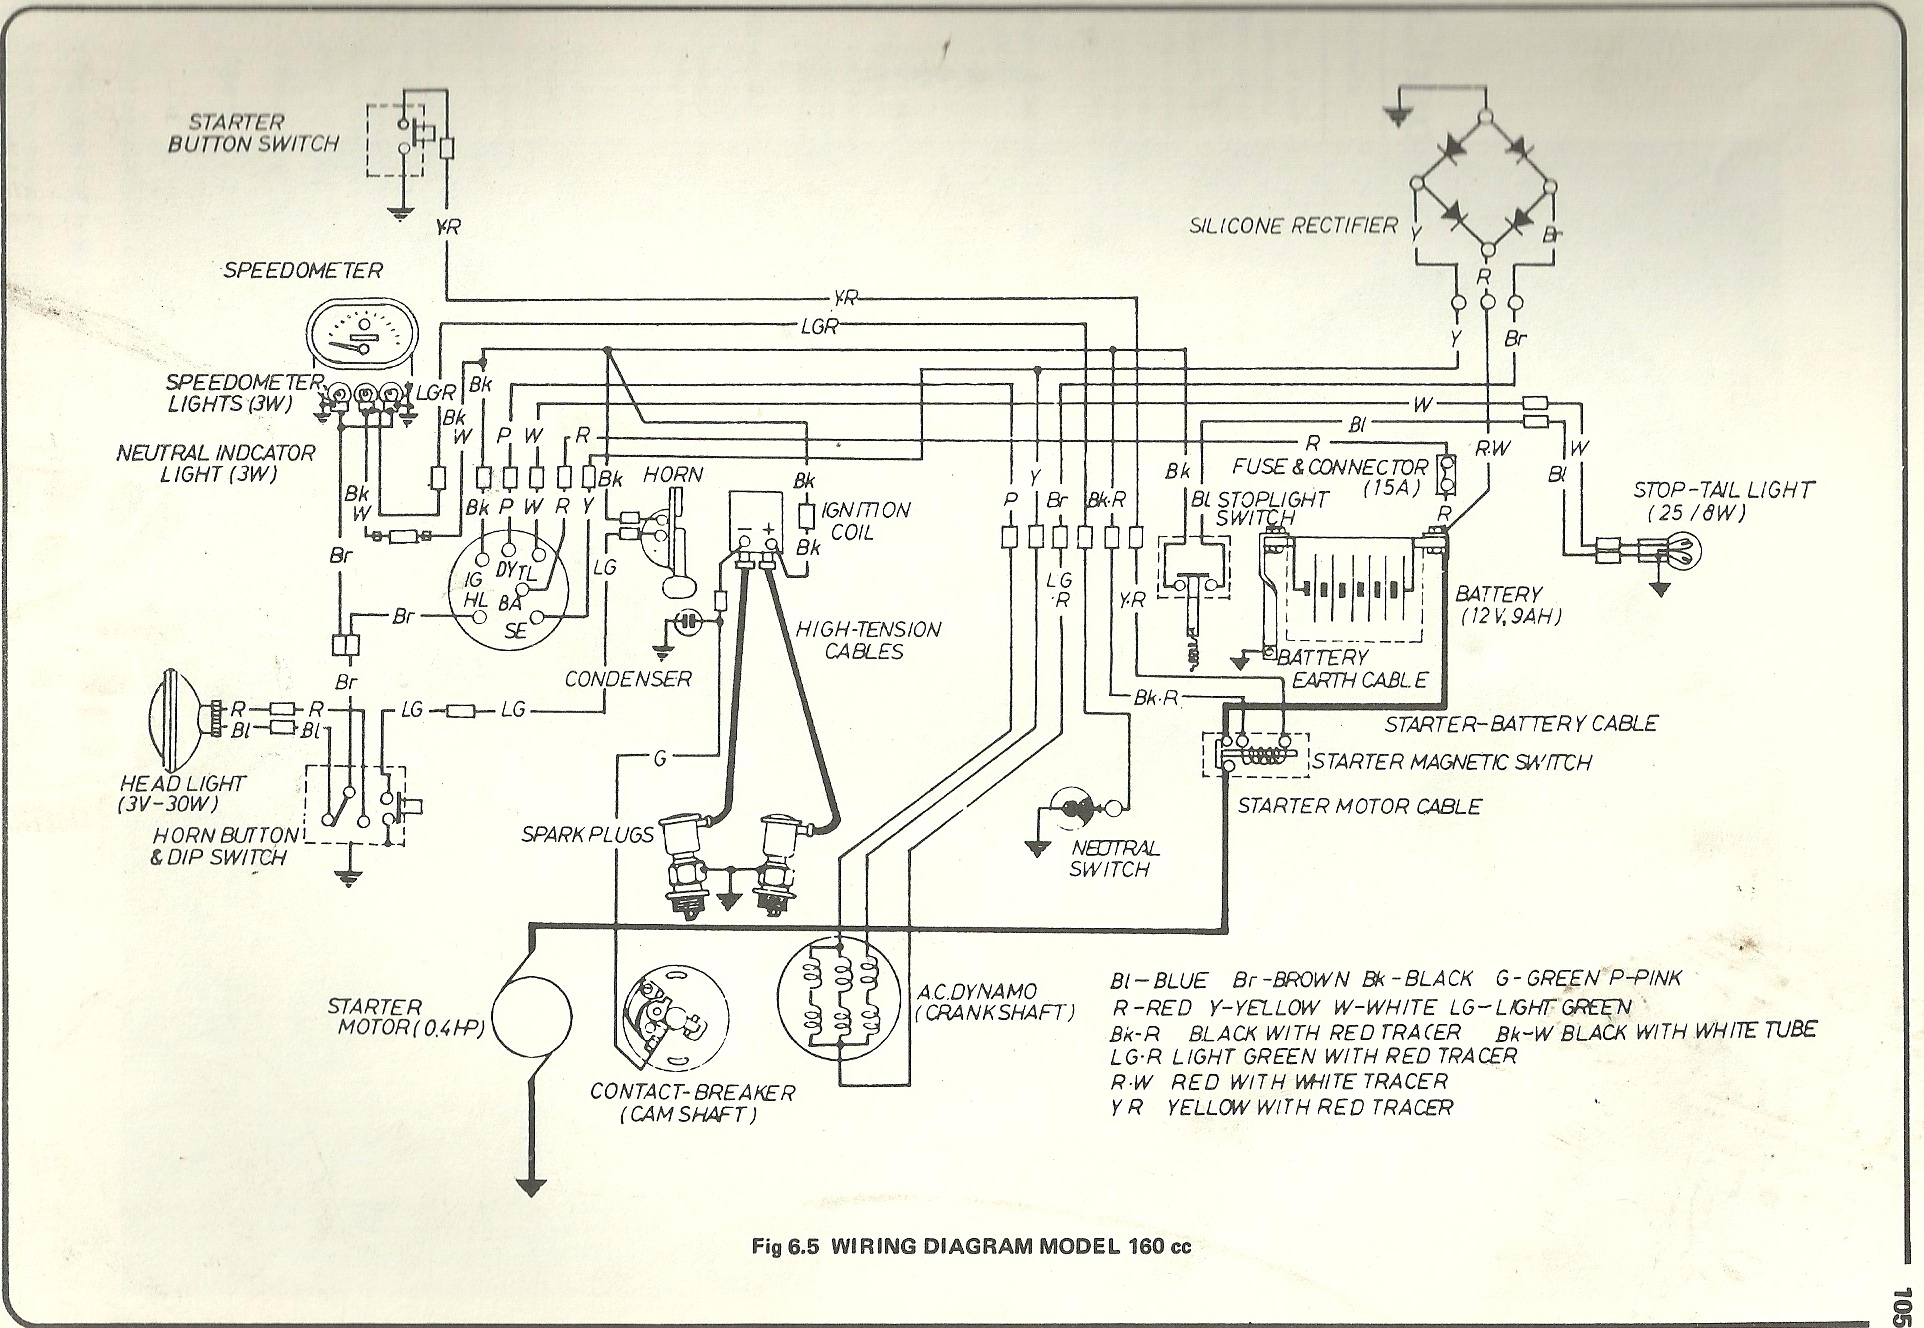 1981 Honda Xr200 Wiring Diagram